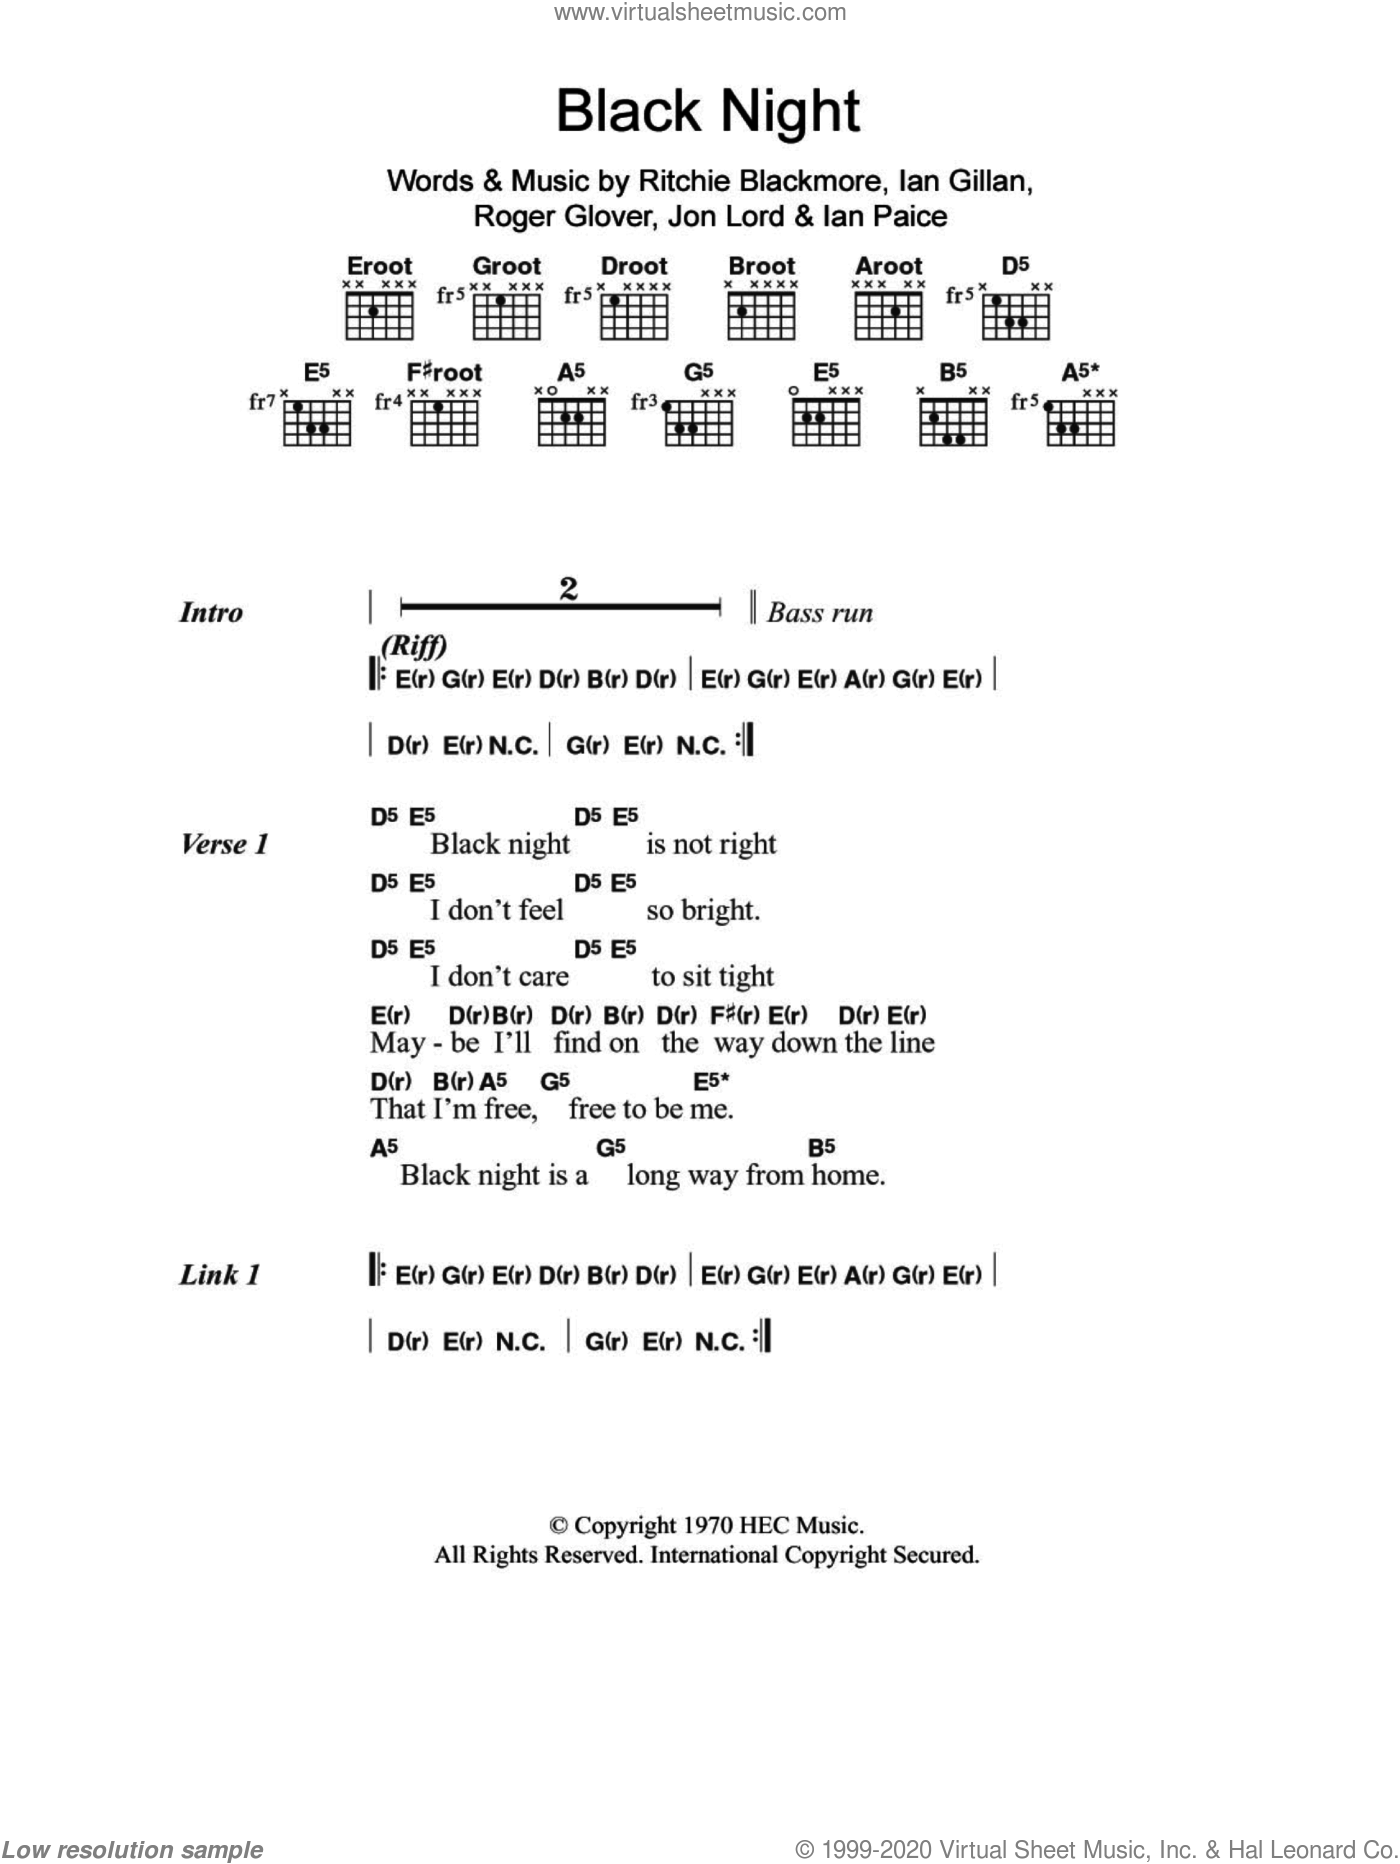 Purple - Black Night sheet music for guitar (chords) [PDF]